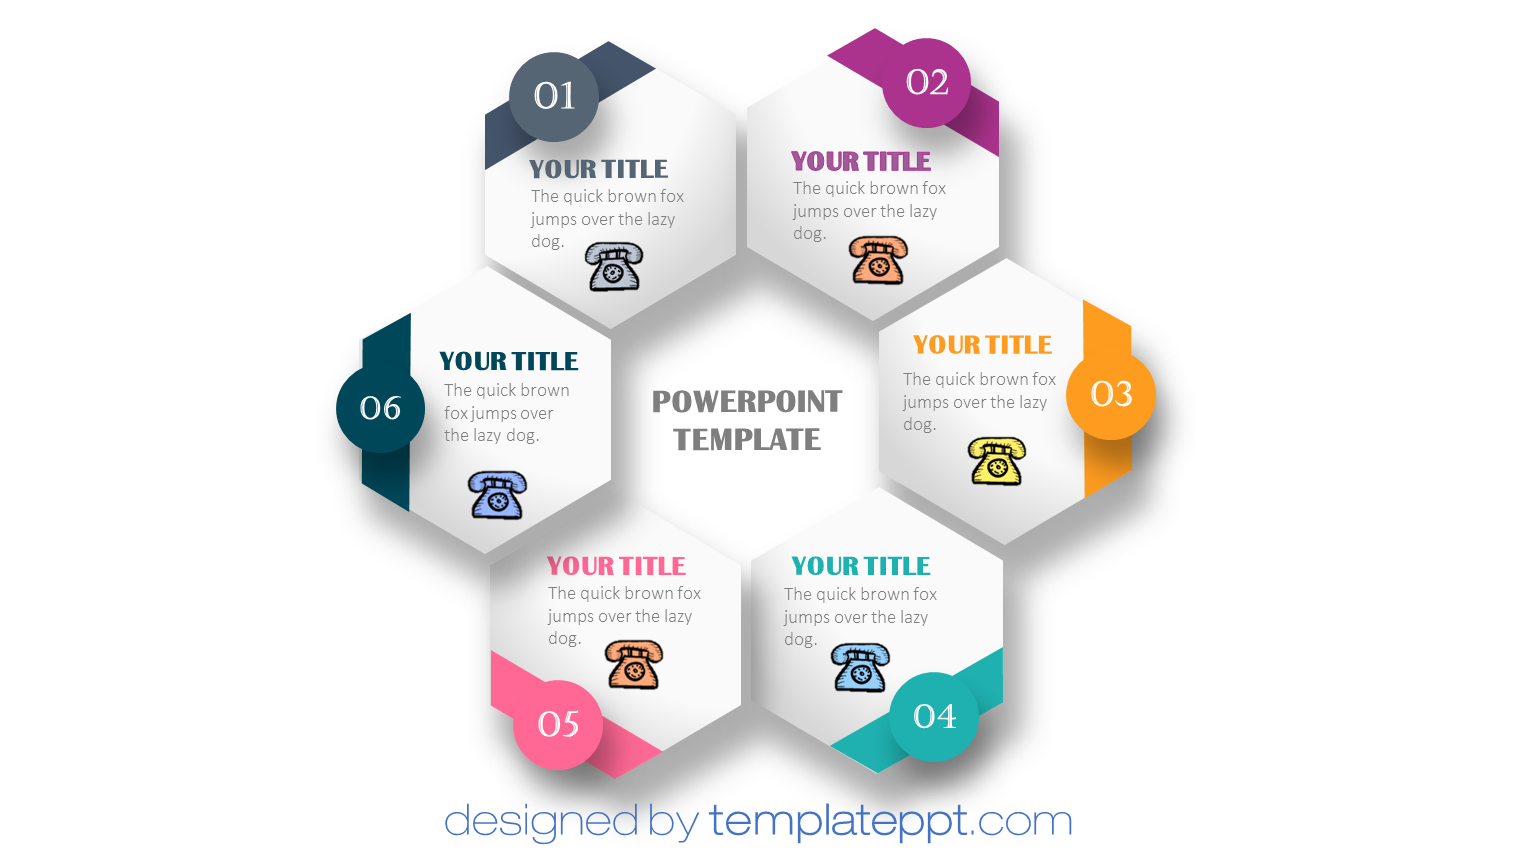 Best animated ppt templates free download download pinterest best animated ppt templates free download toneelgroepblik Images